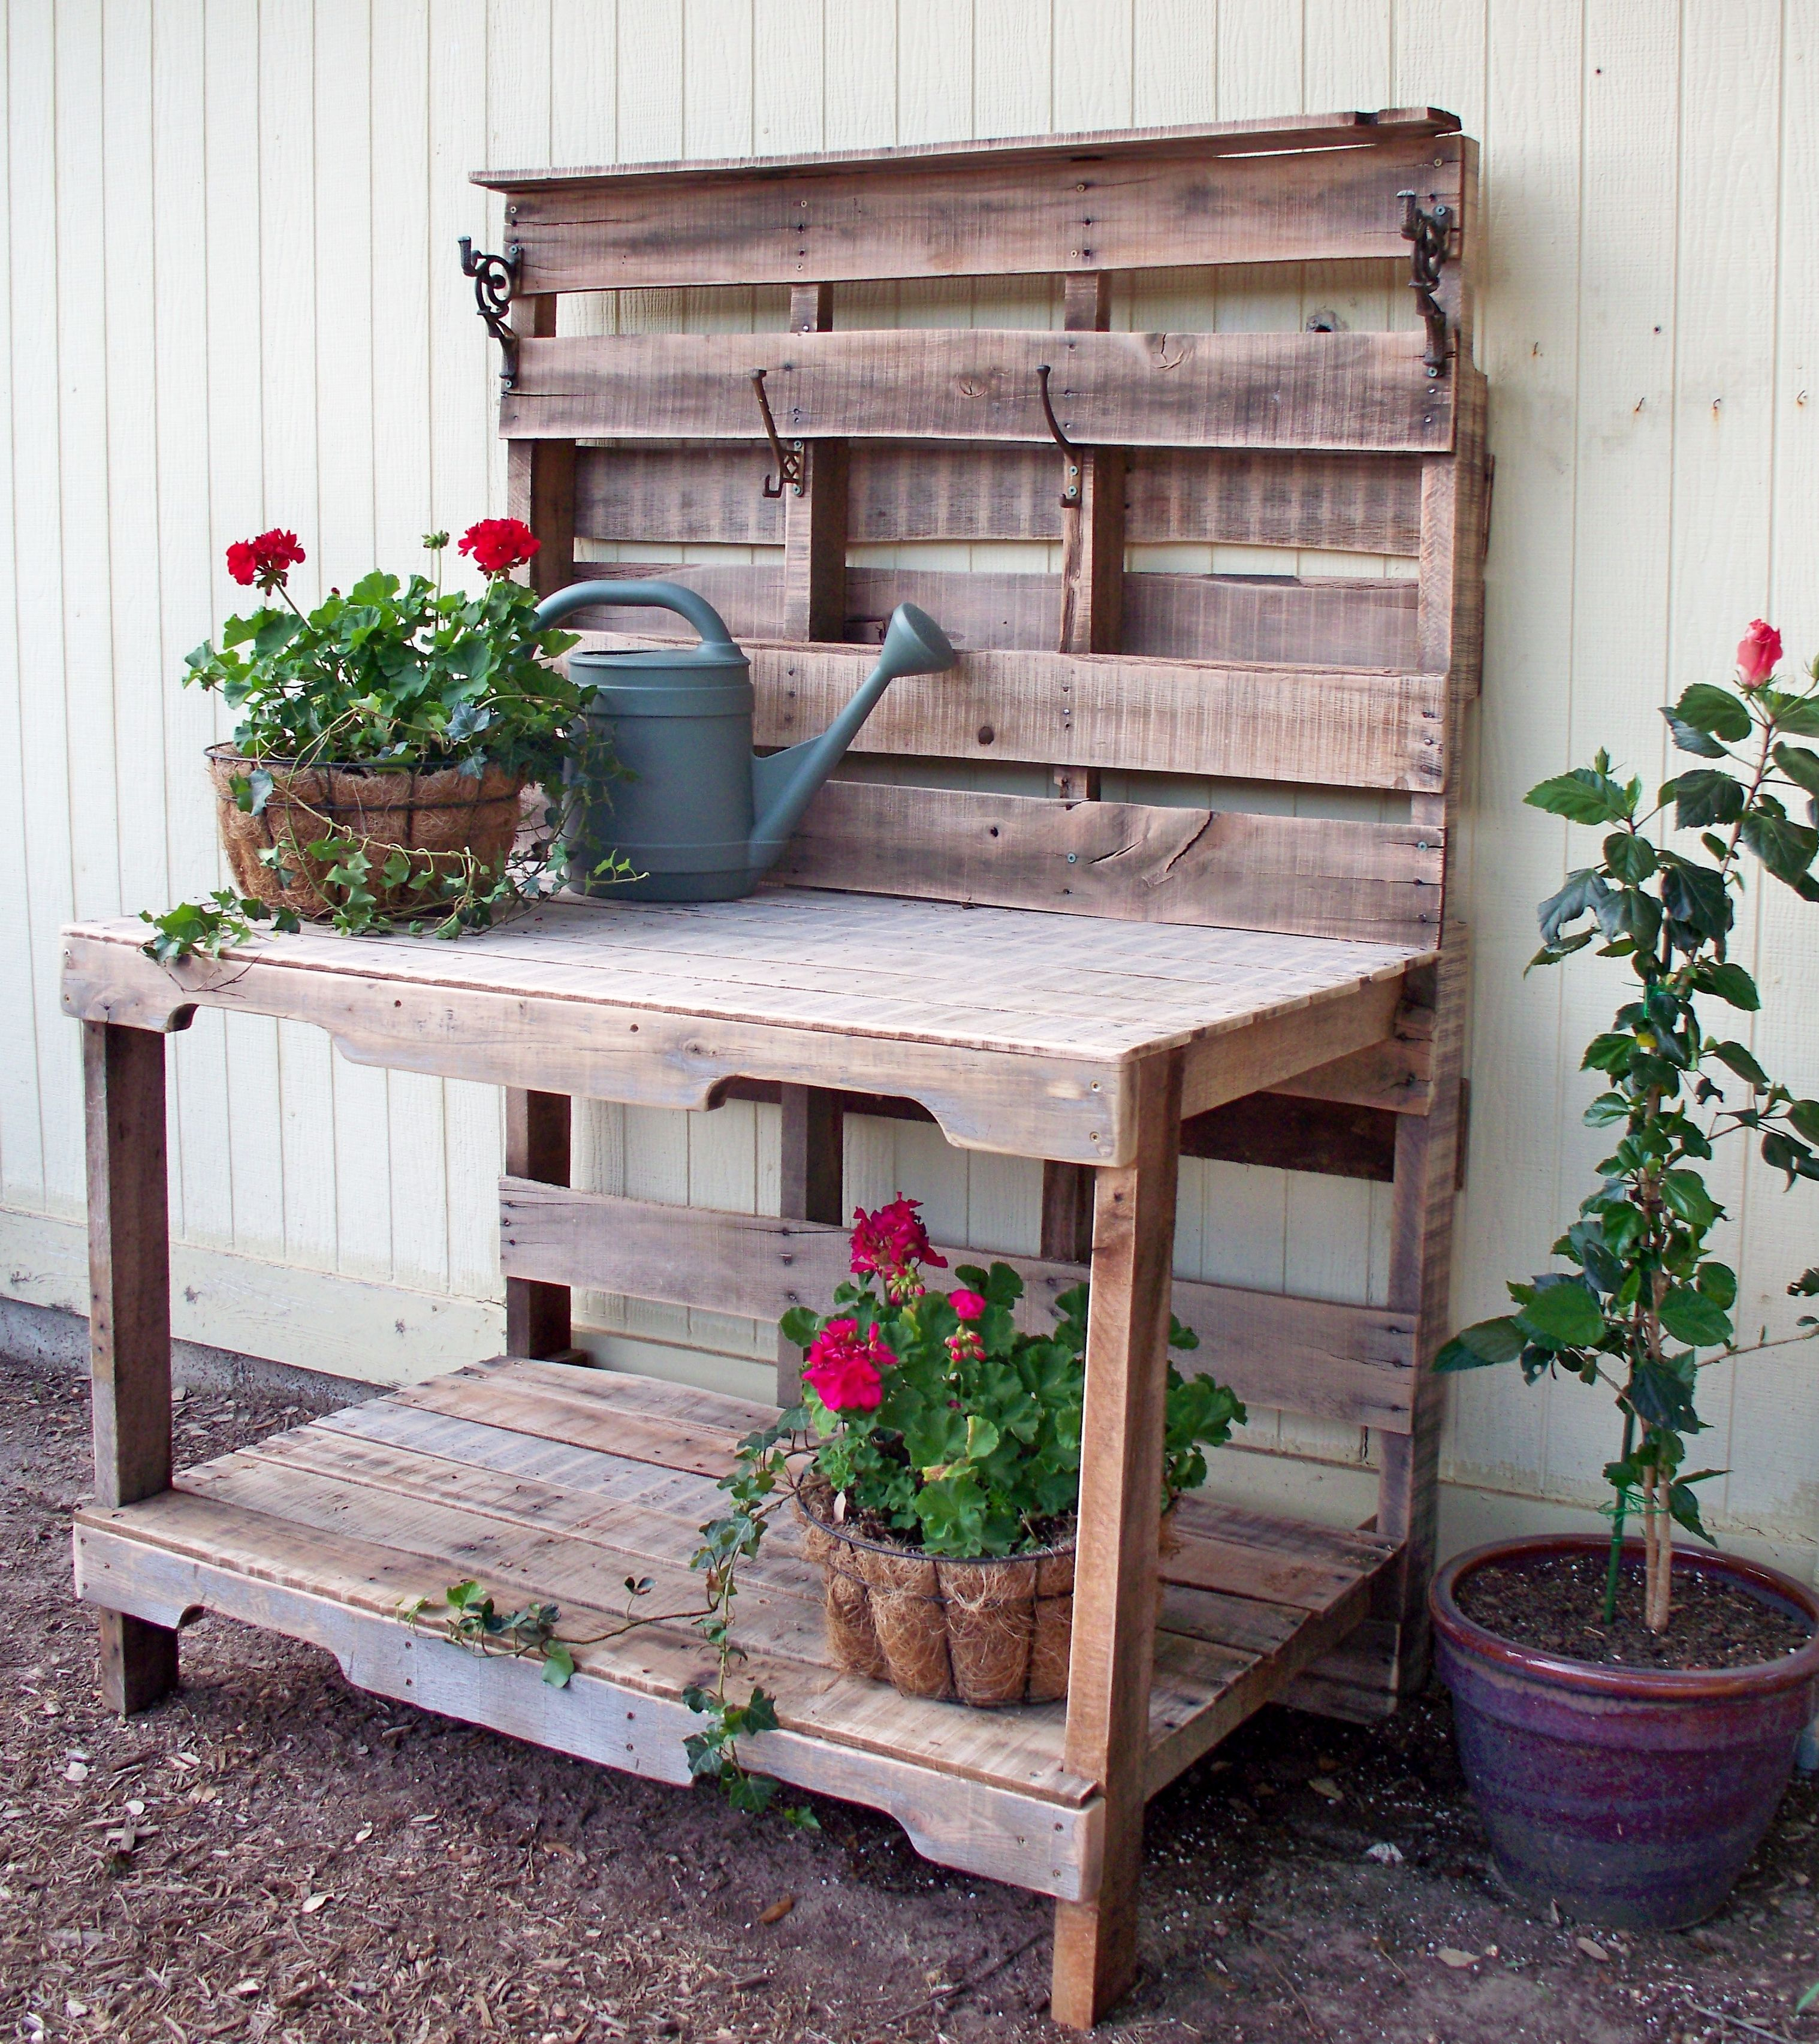 262 Best Old Stools Benches Images On Pinterest: We Made This Bench From Two Pallets. We Sanded The Wood